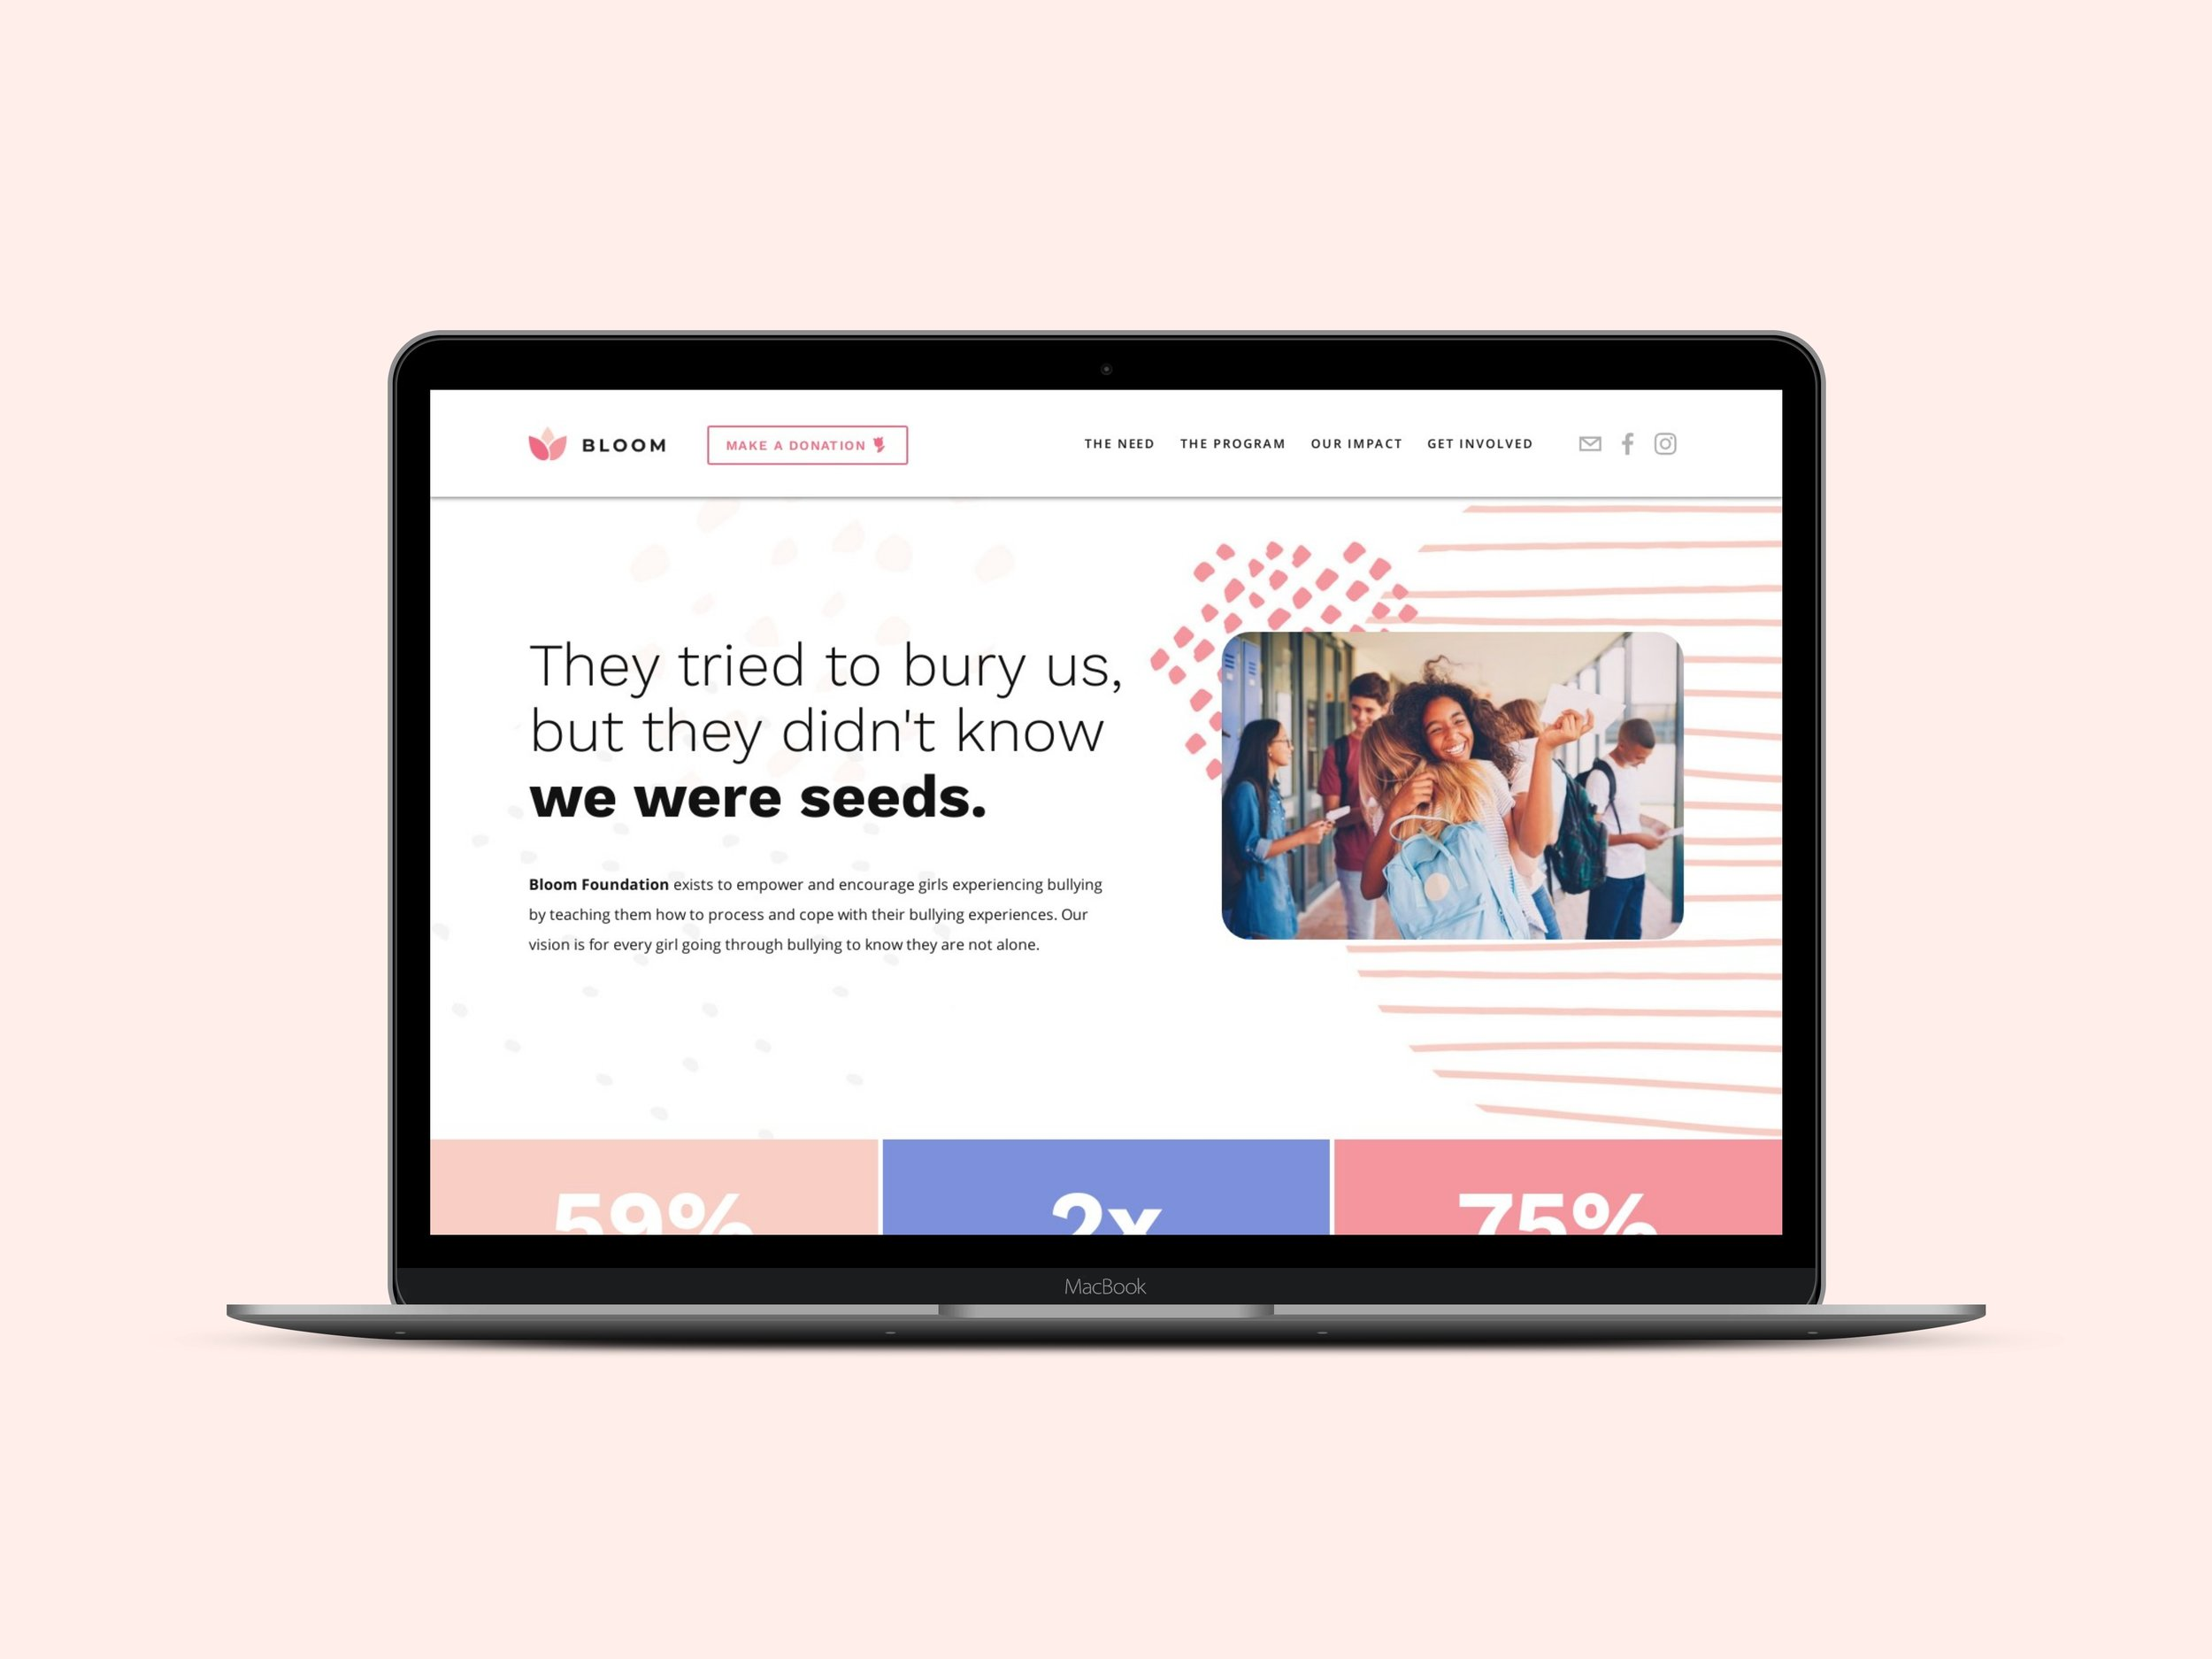 Bloom Foundation - Bloom Foundation is a non-profit dedicated to empowering and encouraging girls experiencing bullying. After creating their logo, branding and design elements for them, we brought it altogether in their website in a simple and straightforward way.